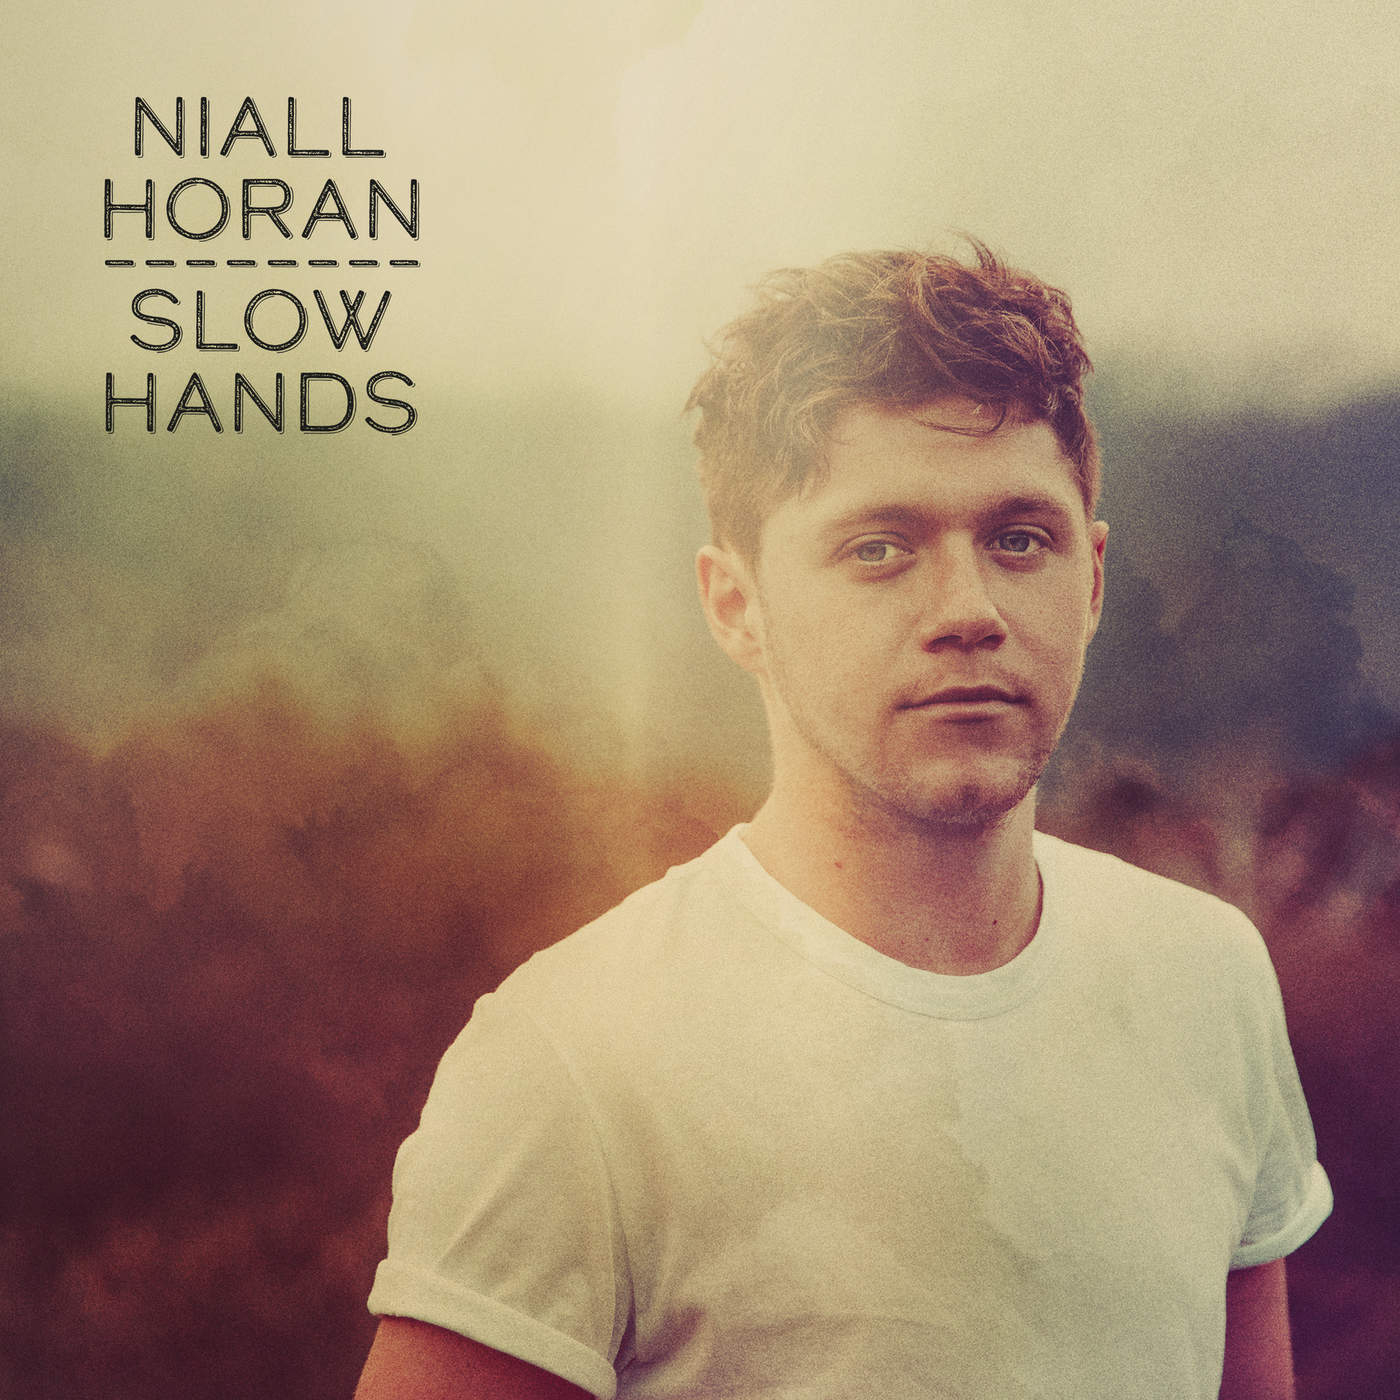 Niall Horan - Slow Hands - Single Cover